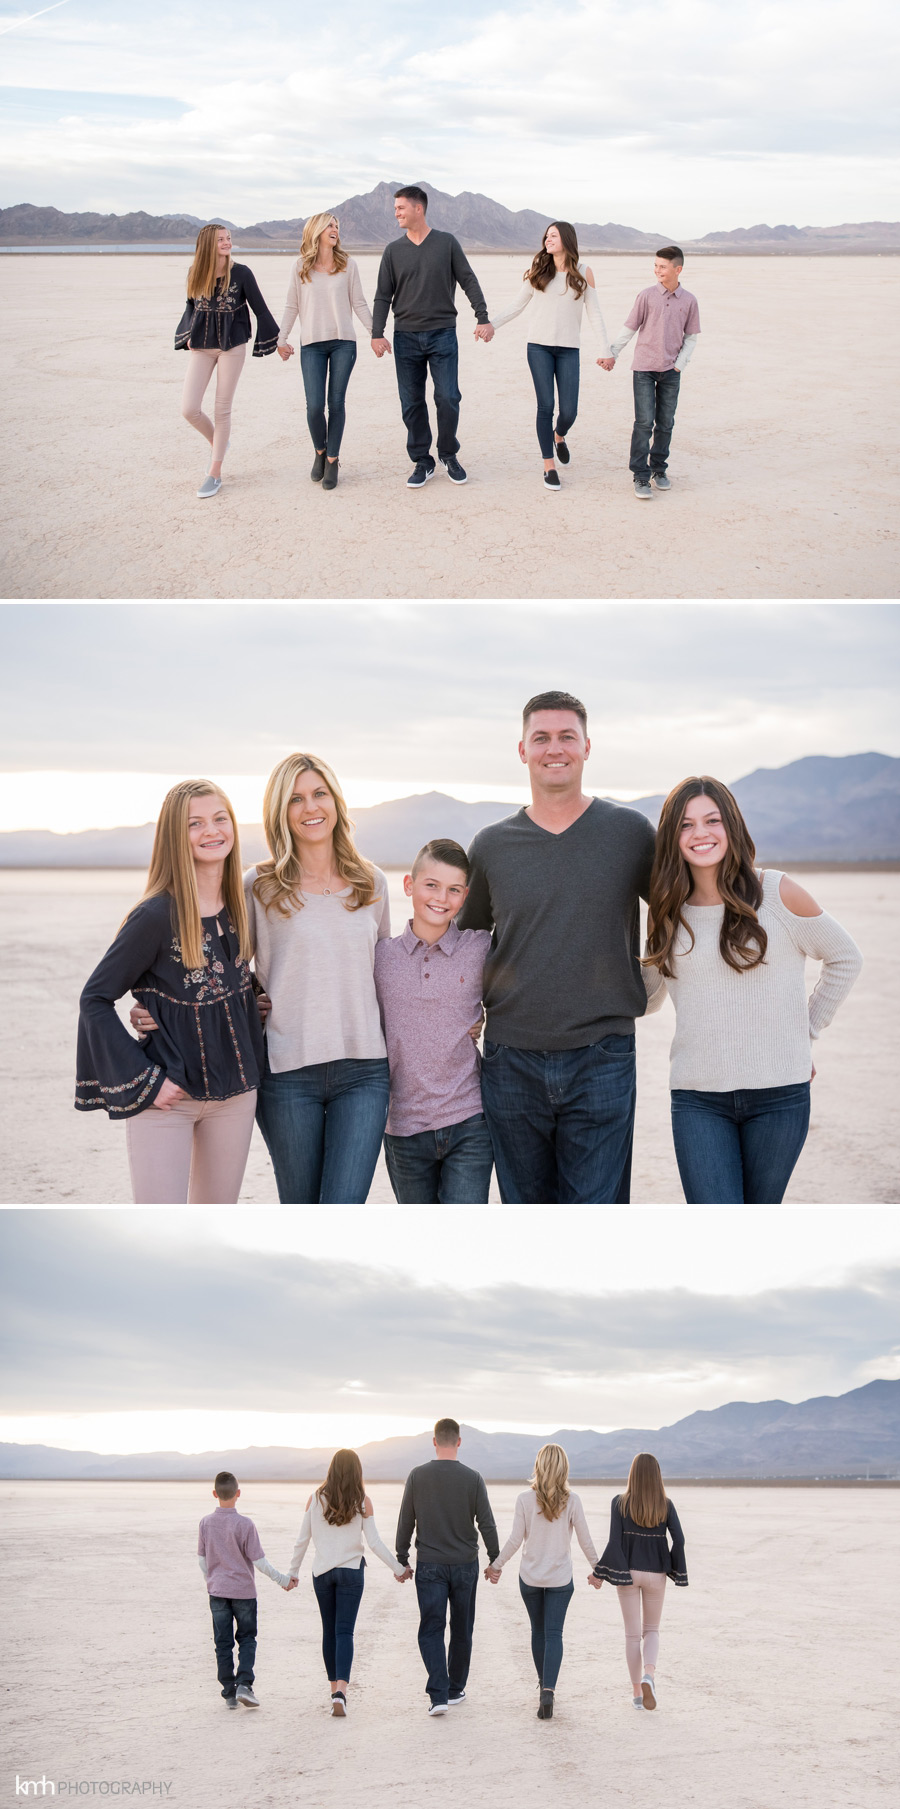 Las Vegas Dry Lake Bed Family Portraits | KMH Photography, Las Vegas Family Photographer